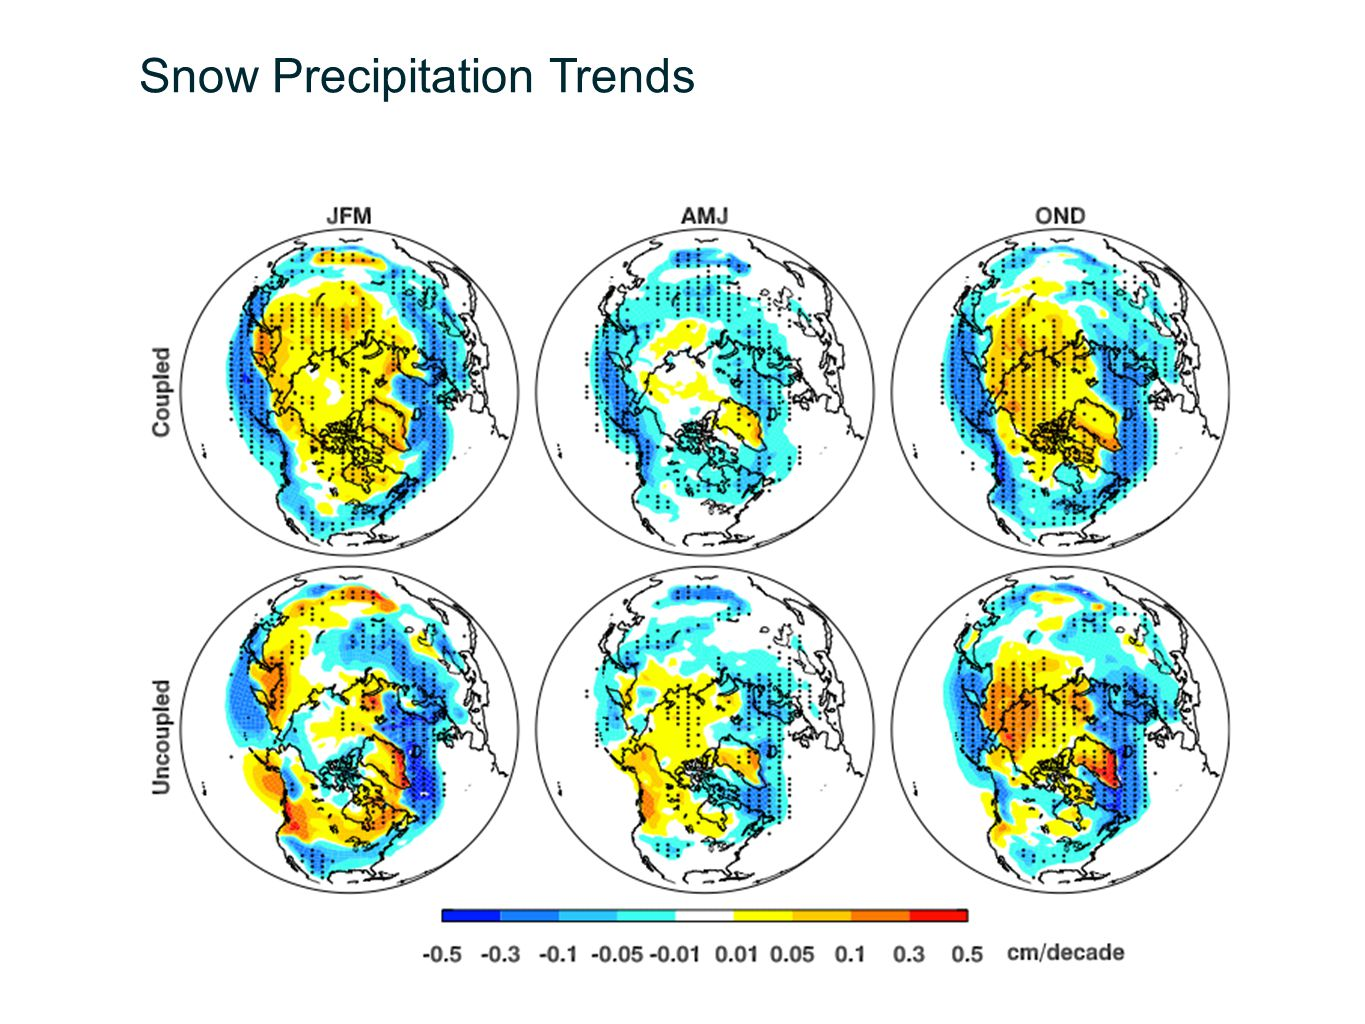 Snow Precipitation Trends